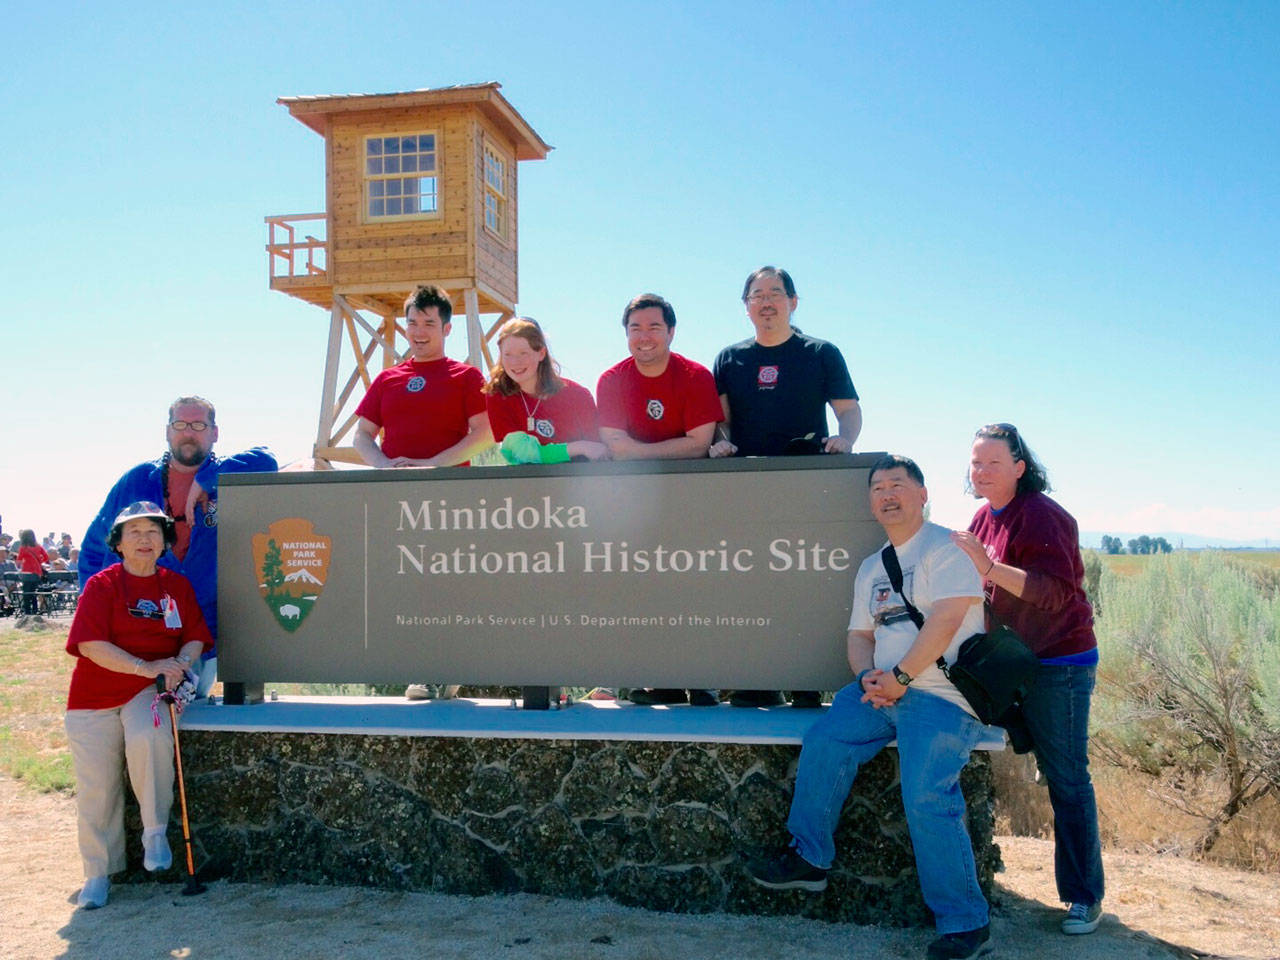 Members of the extended Watanabe family gather at the entrance to the Minidoka National Historic Site in southern Idaho. From left are Shizue Watanabe, Bif Brigman, Lucas Watanabe, Hannah Serl, Ben Watanabe, Dale Watanabe, Glen Watanabe, and Jody Serl. (Glen Watanabe)